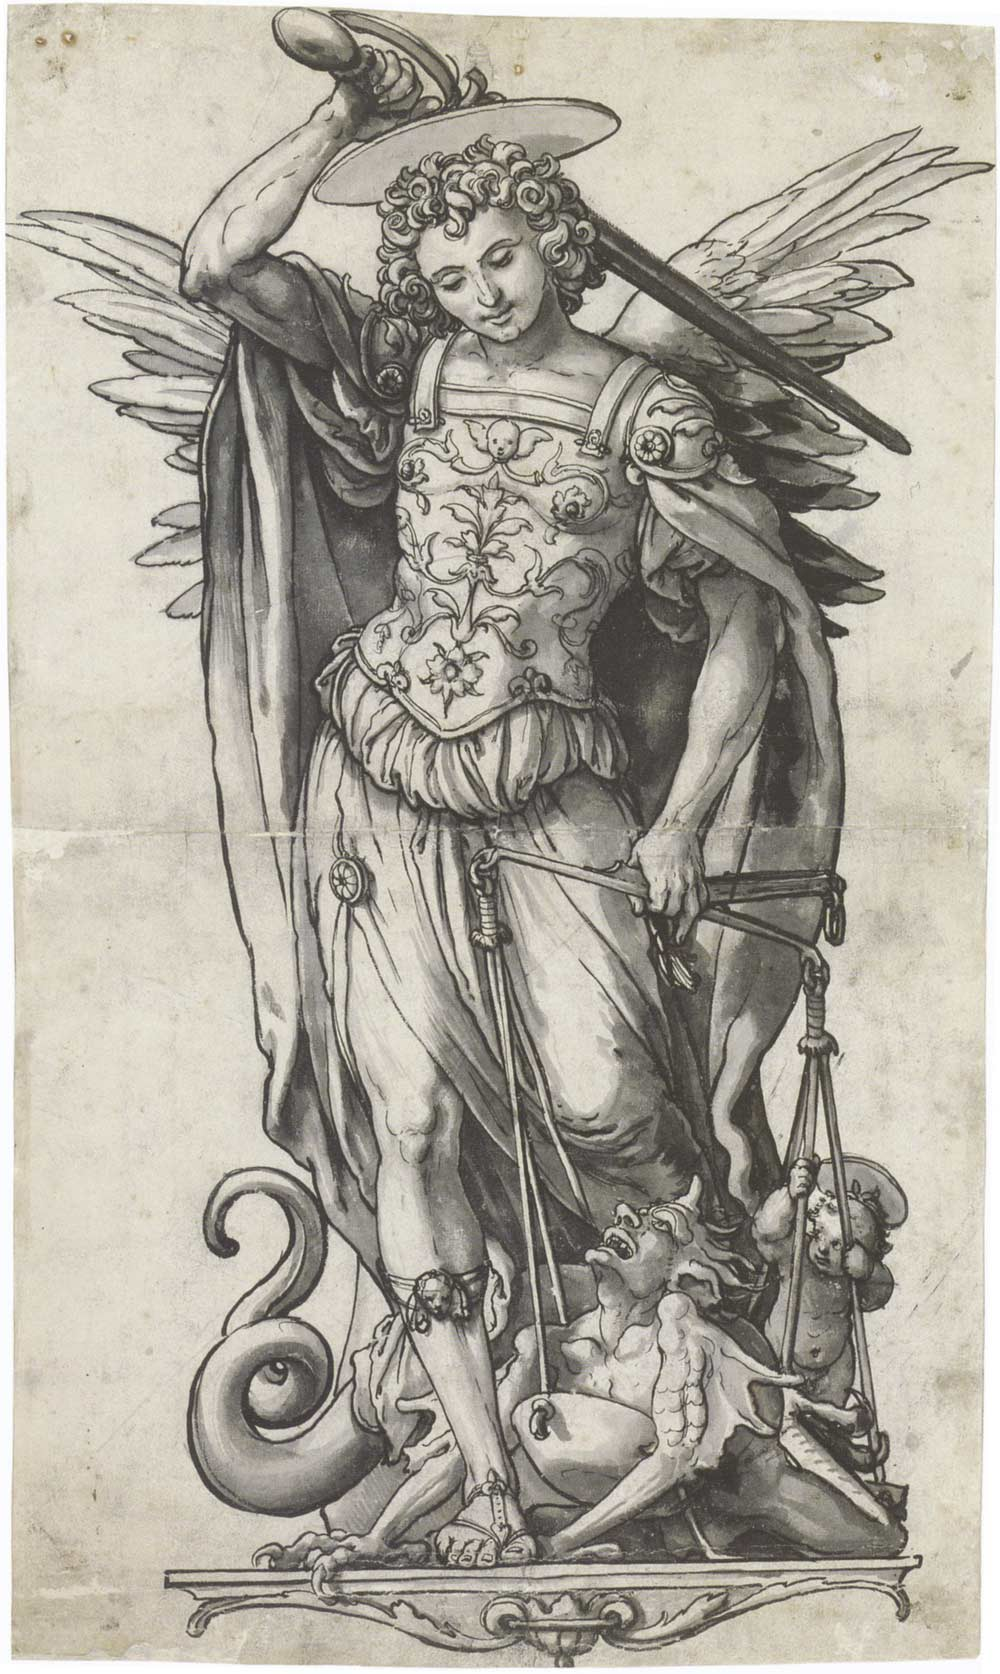 Hans-Holbein-the-Younger-Archangel-Michael-Weighing-Souls